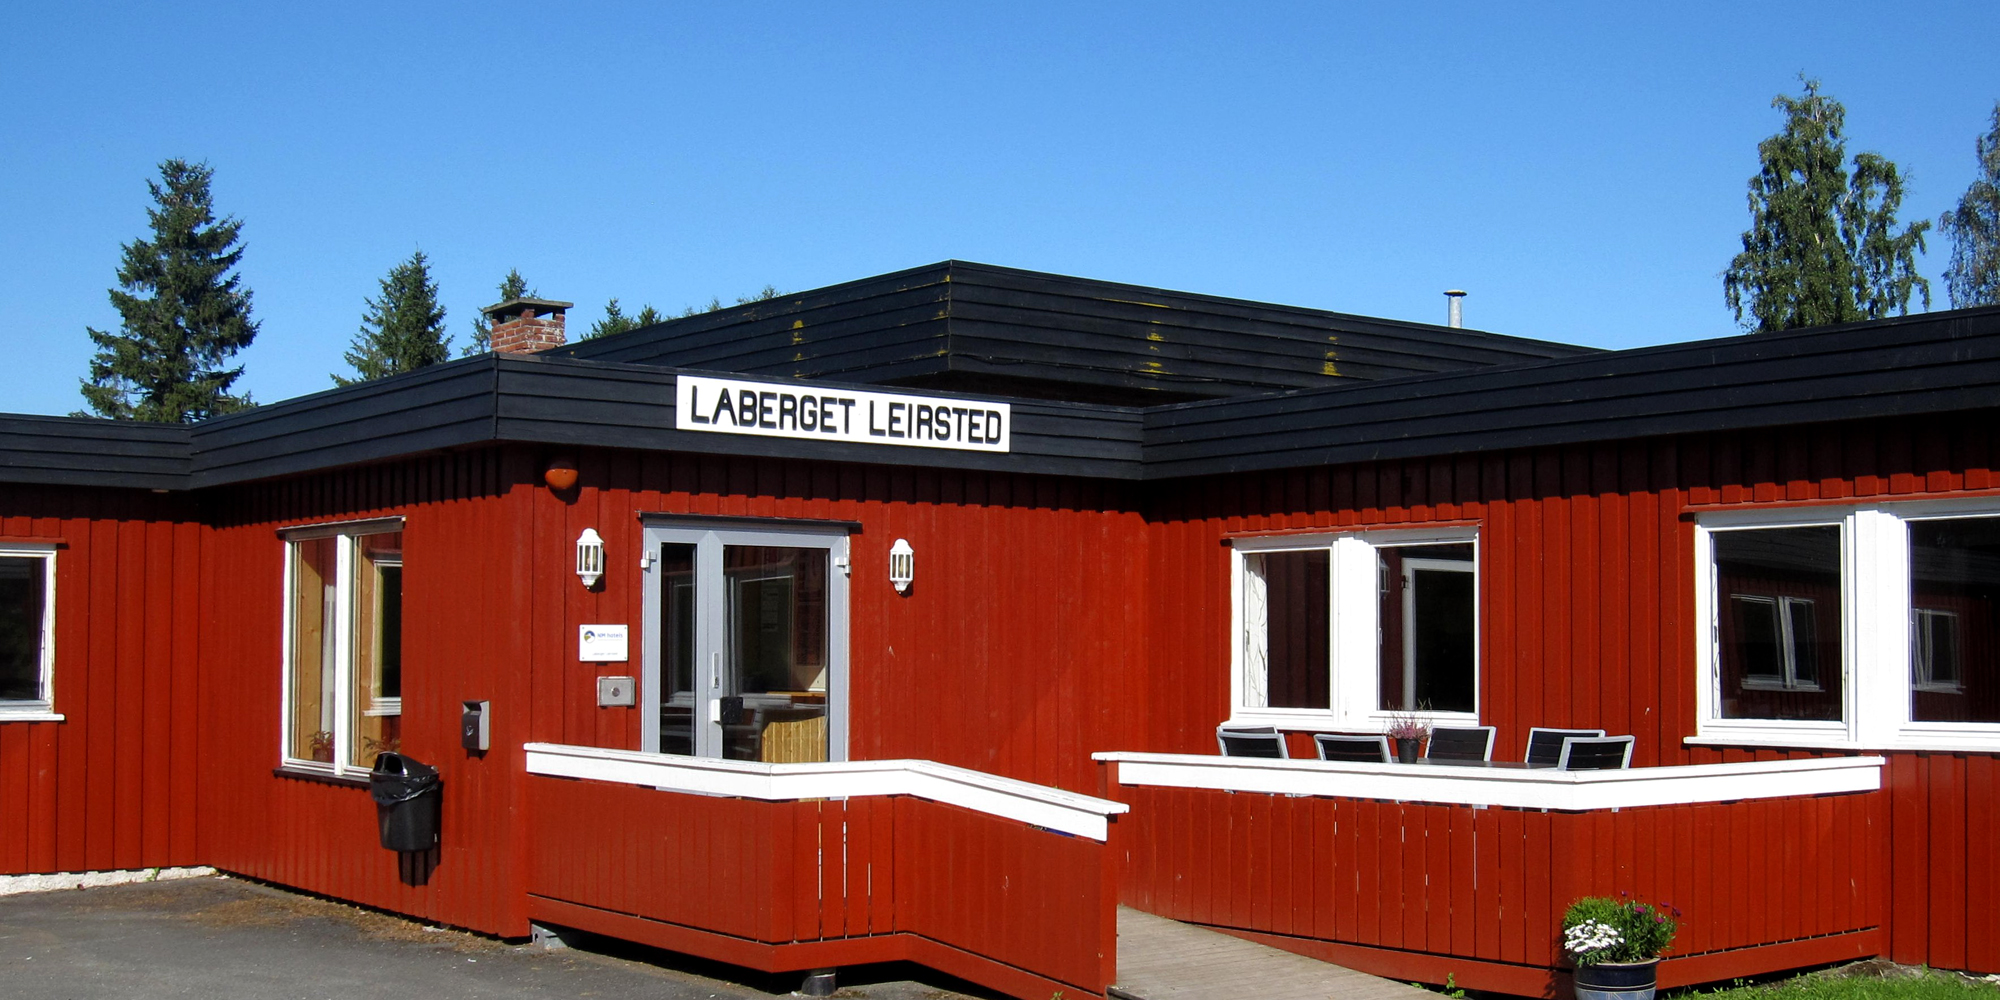 Laberget leirsted